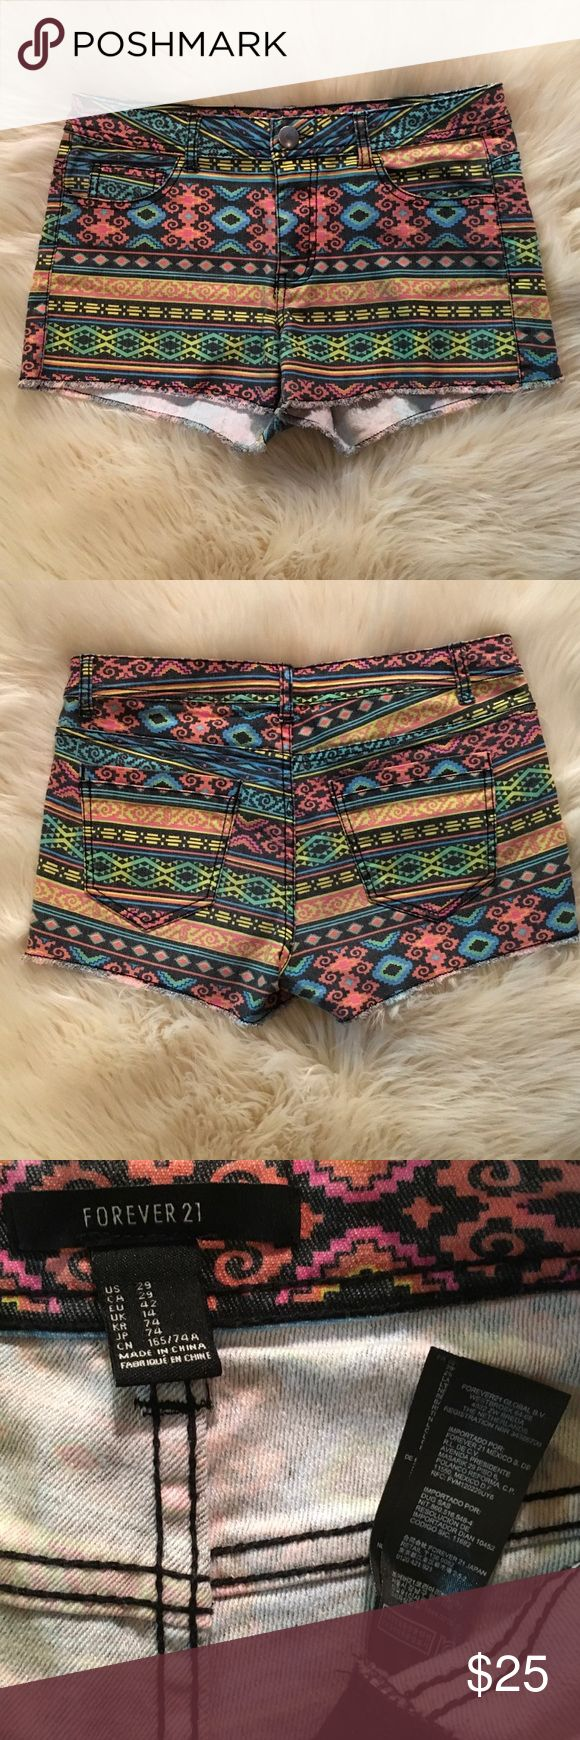 "Forever 21 Colorful Aztec Tribal Shorts Sz 29 NWOT Forever 21 Colorful Aztec Tribal Shorts. Raw Edge. Black stitching. Inseam 2.5"", Rise 9"" size 29, US 8 NWOT Forever 21 Shorts Jean Shorts"